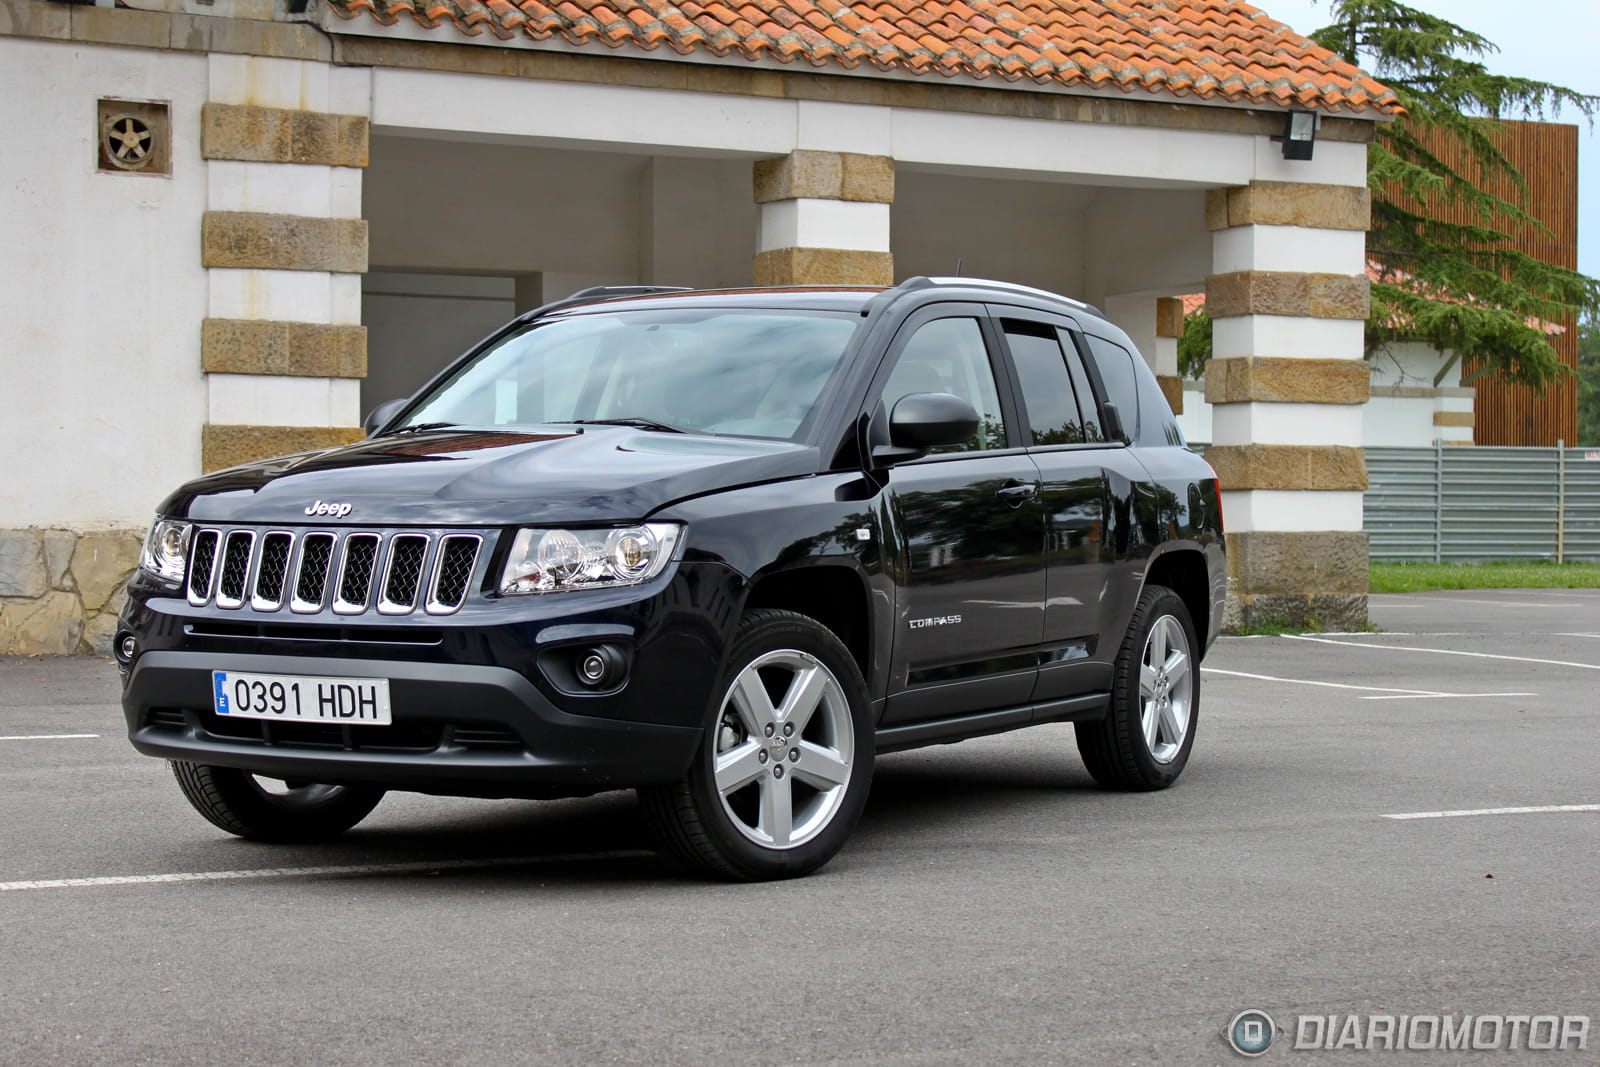 jeep compass 2 2 crd 4 2 limited plus 136 cv a prueba i diariomotor. Black Bedroom Furniture Sets. Home Design Ideas